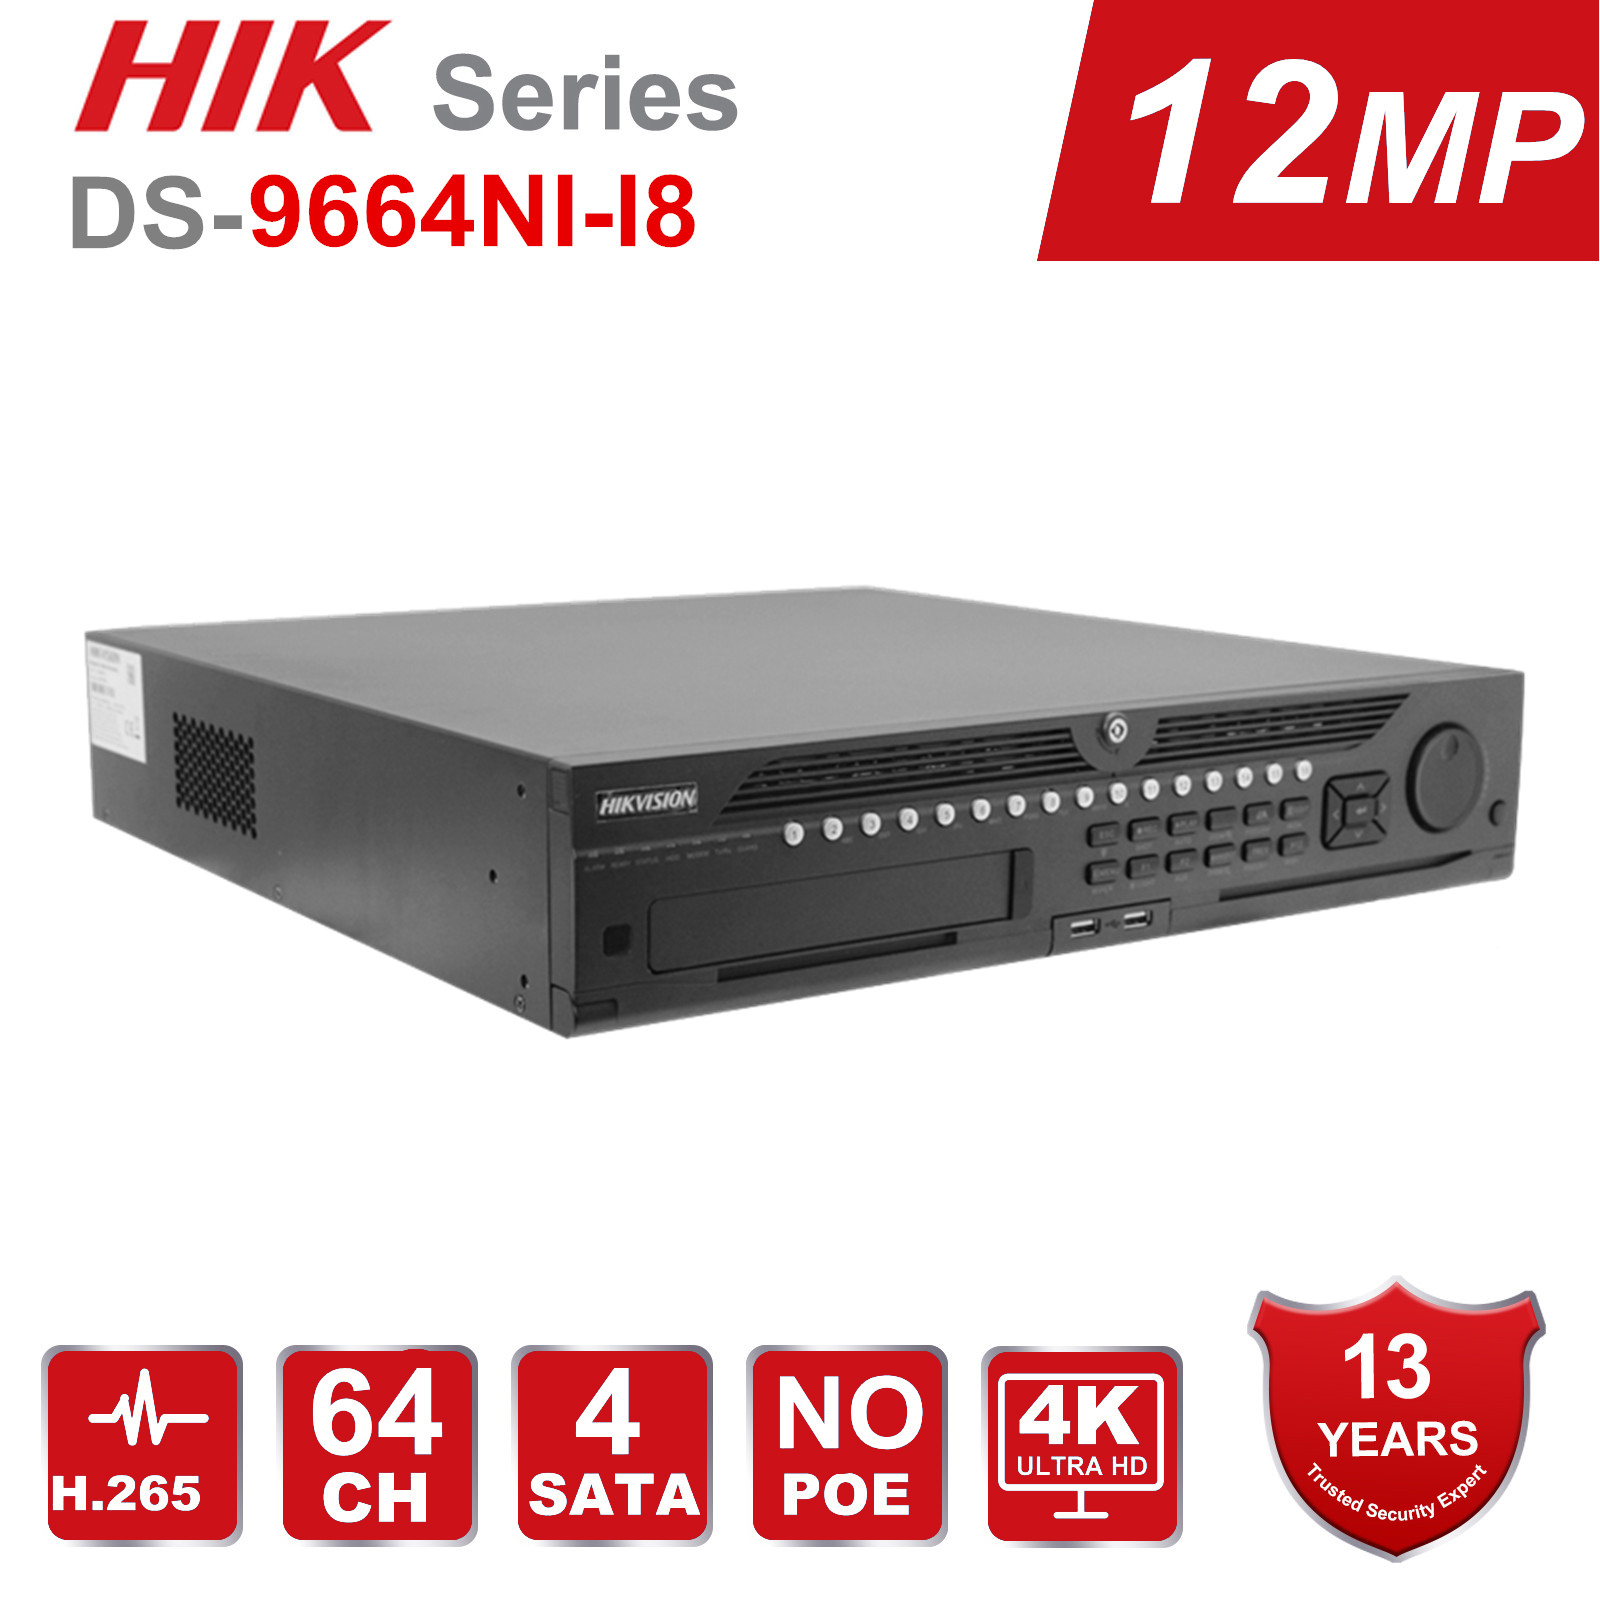 Hikvision Professional 64 Channel CCTV System DS-9664NI-I8 Embedded 4K 64 CH NVR Up to <font><b>12</b></font> Megapixels Resolution 8 <font><b>SATA</b></font> 2 HDMI image